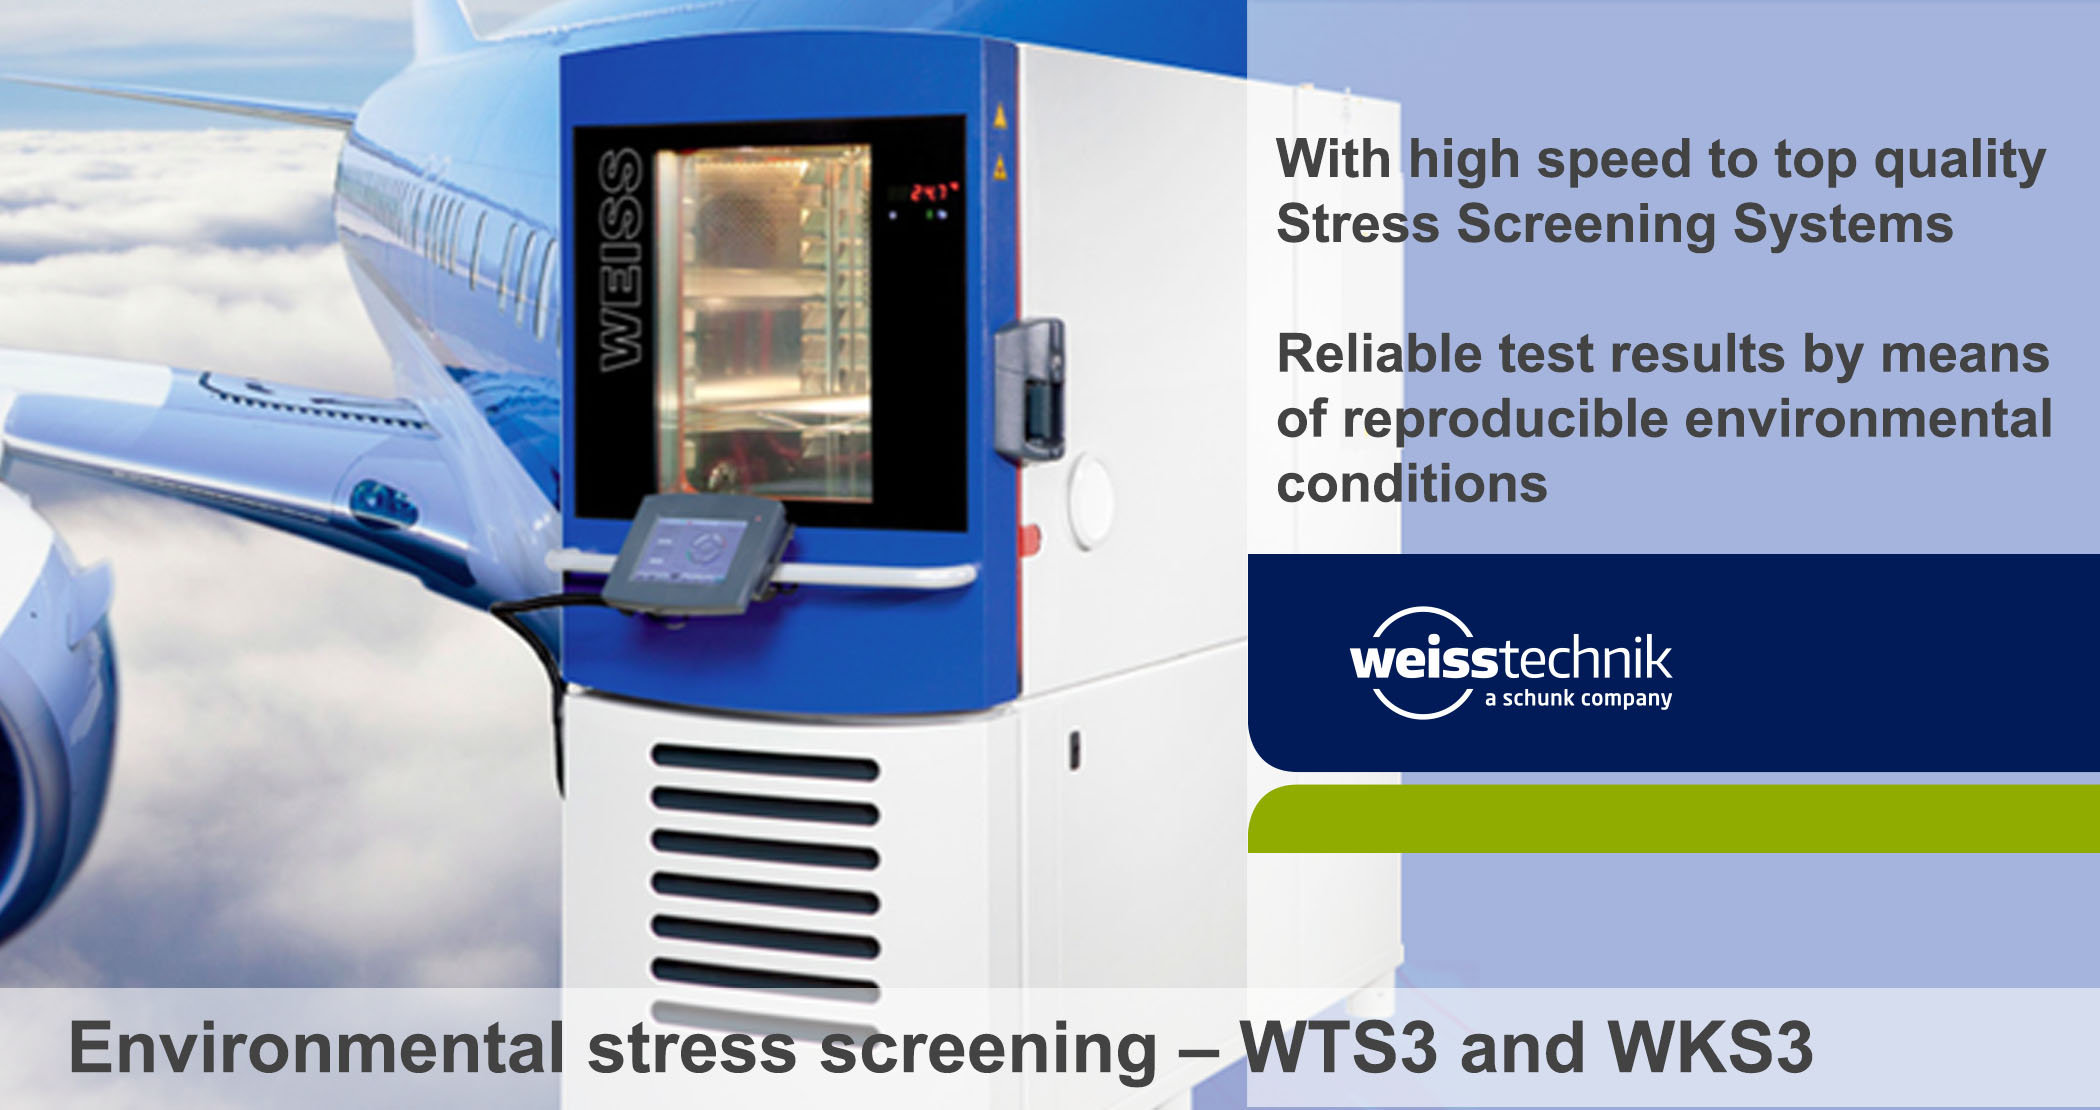 Vibration test chambers, WT-V, WK-V - Environmental stress screening -  Climate chamber – Amtest, test and measurement